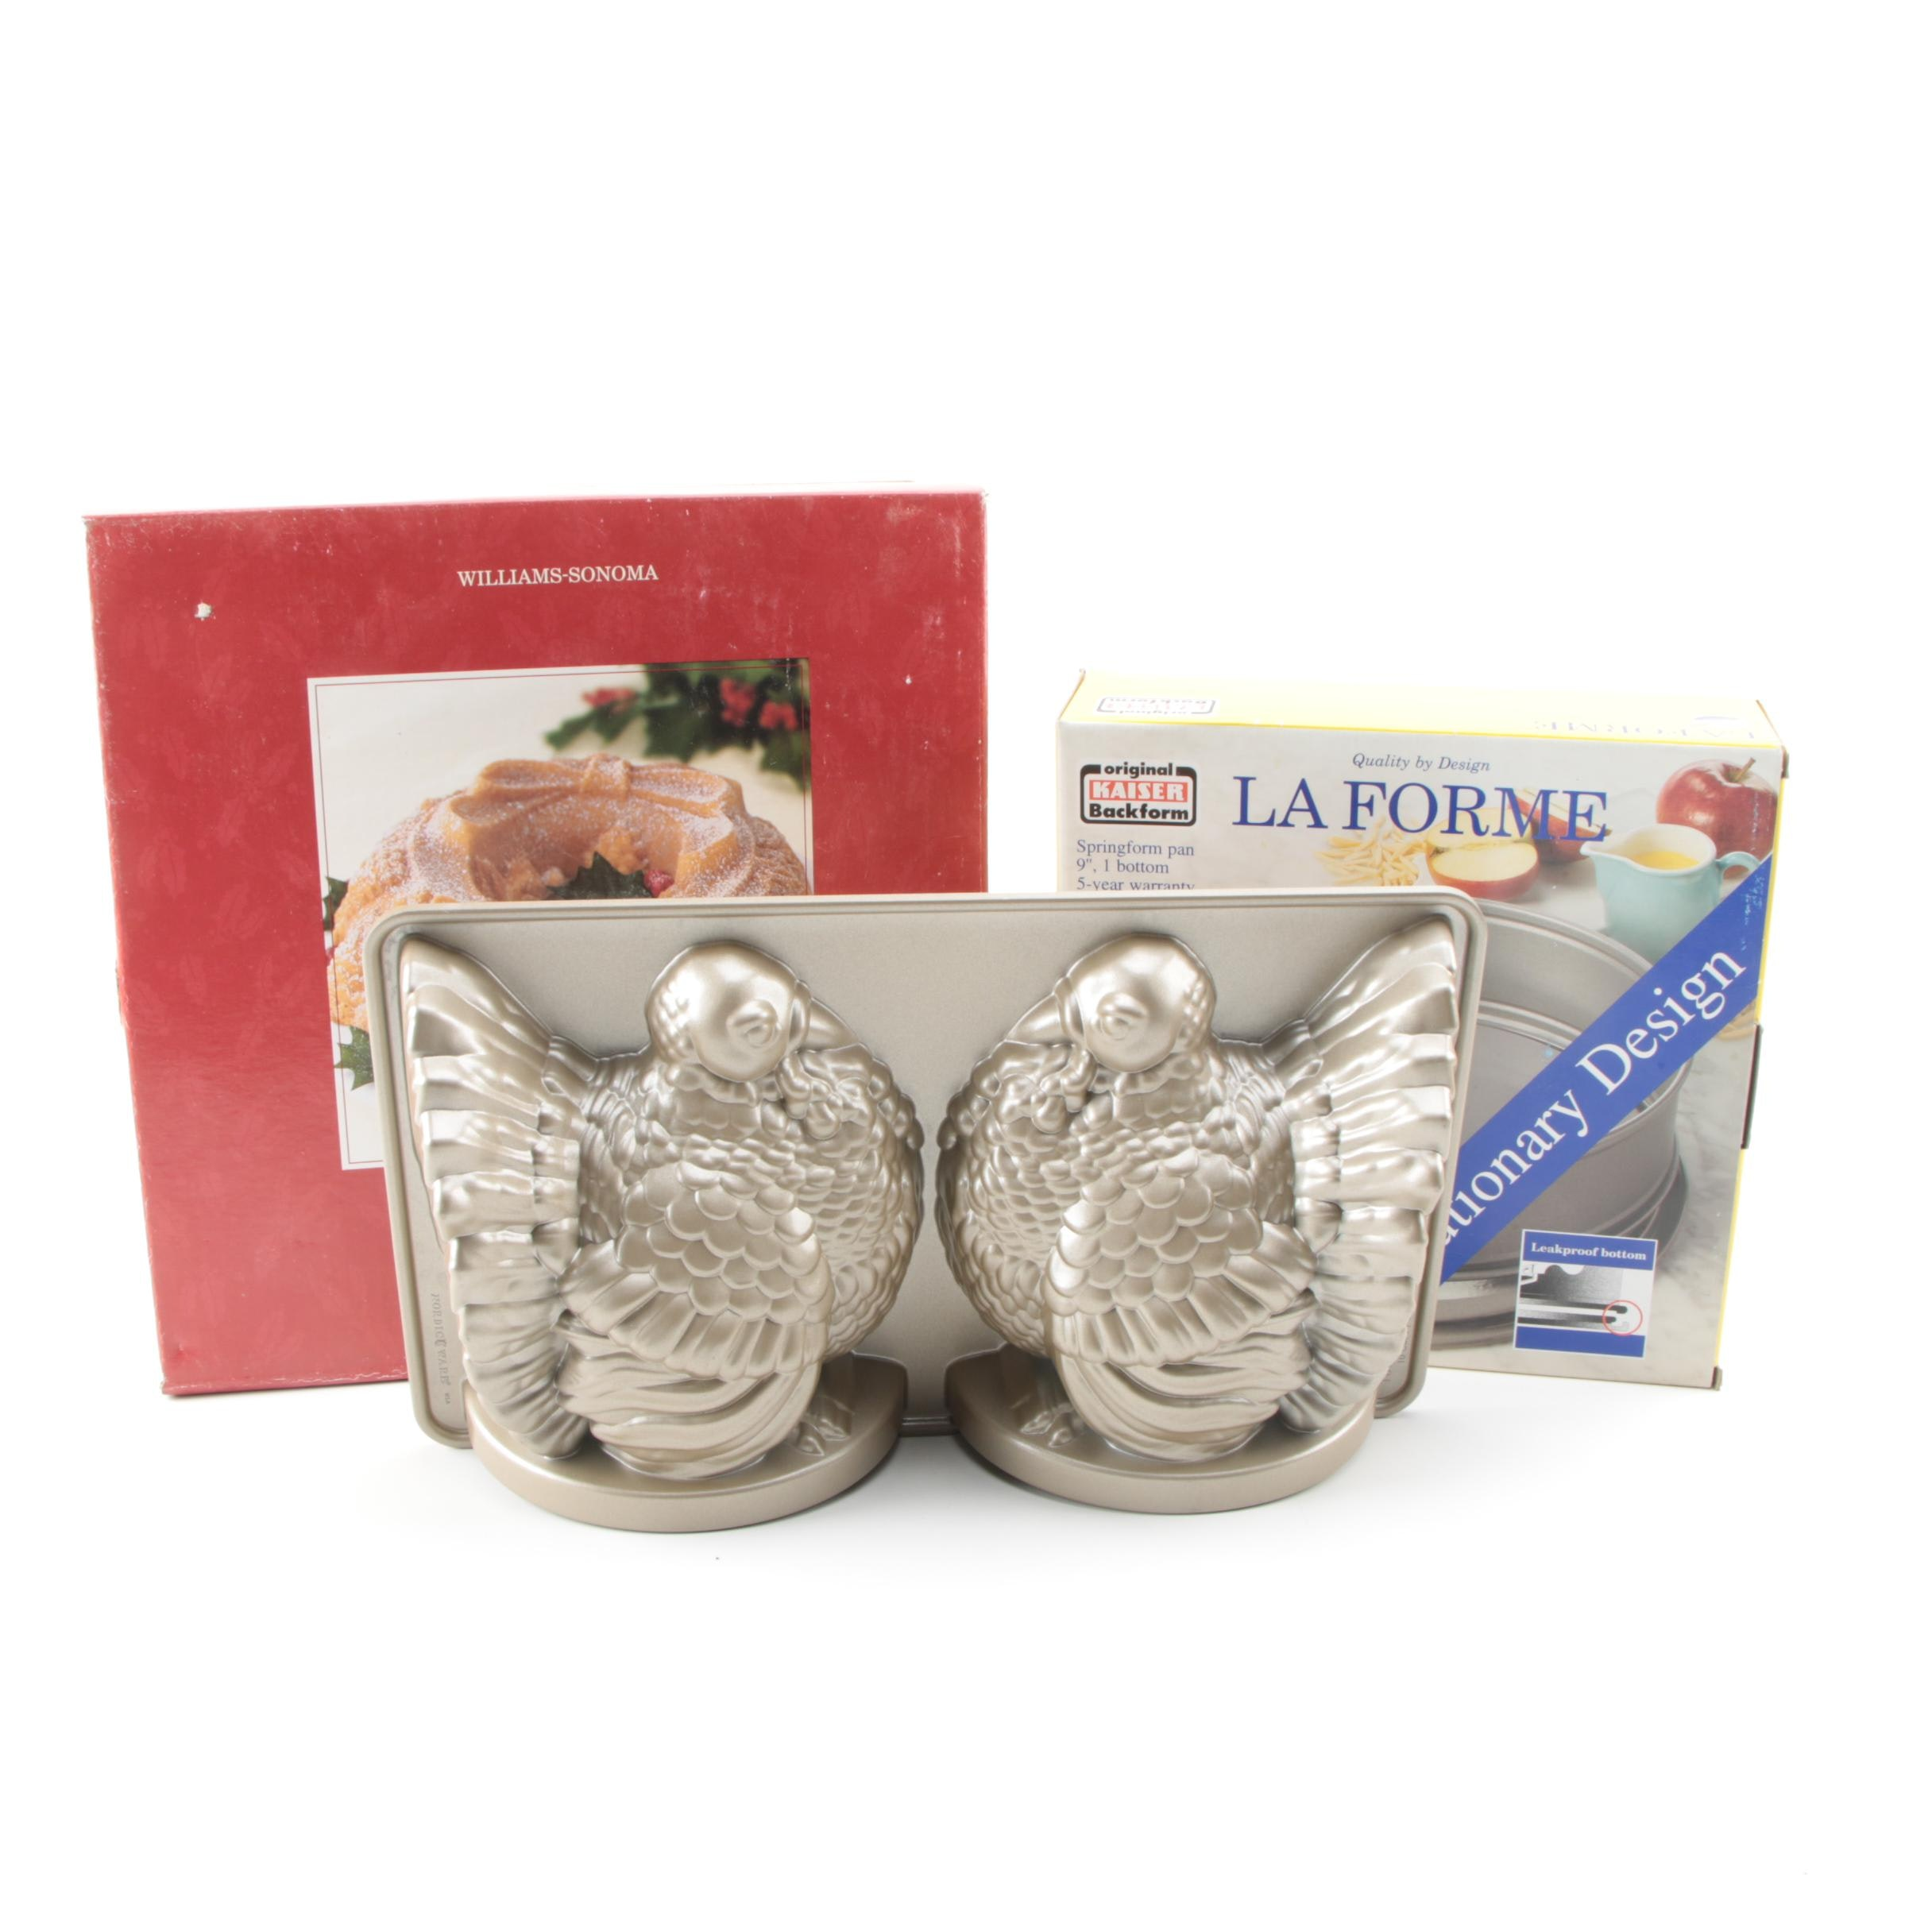 Baking Molds and Pans Featuring La Forme and Williams-Sonoma